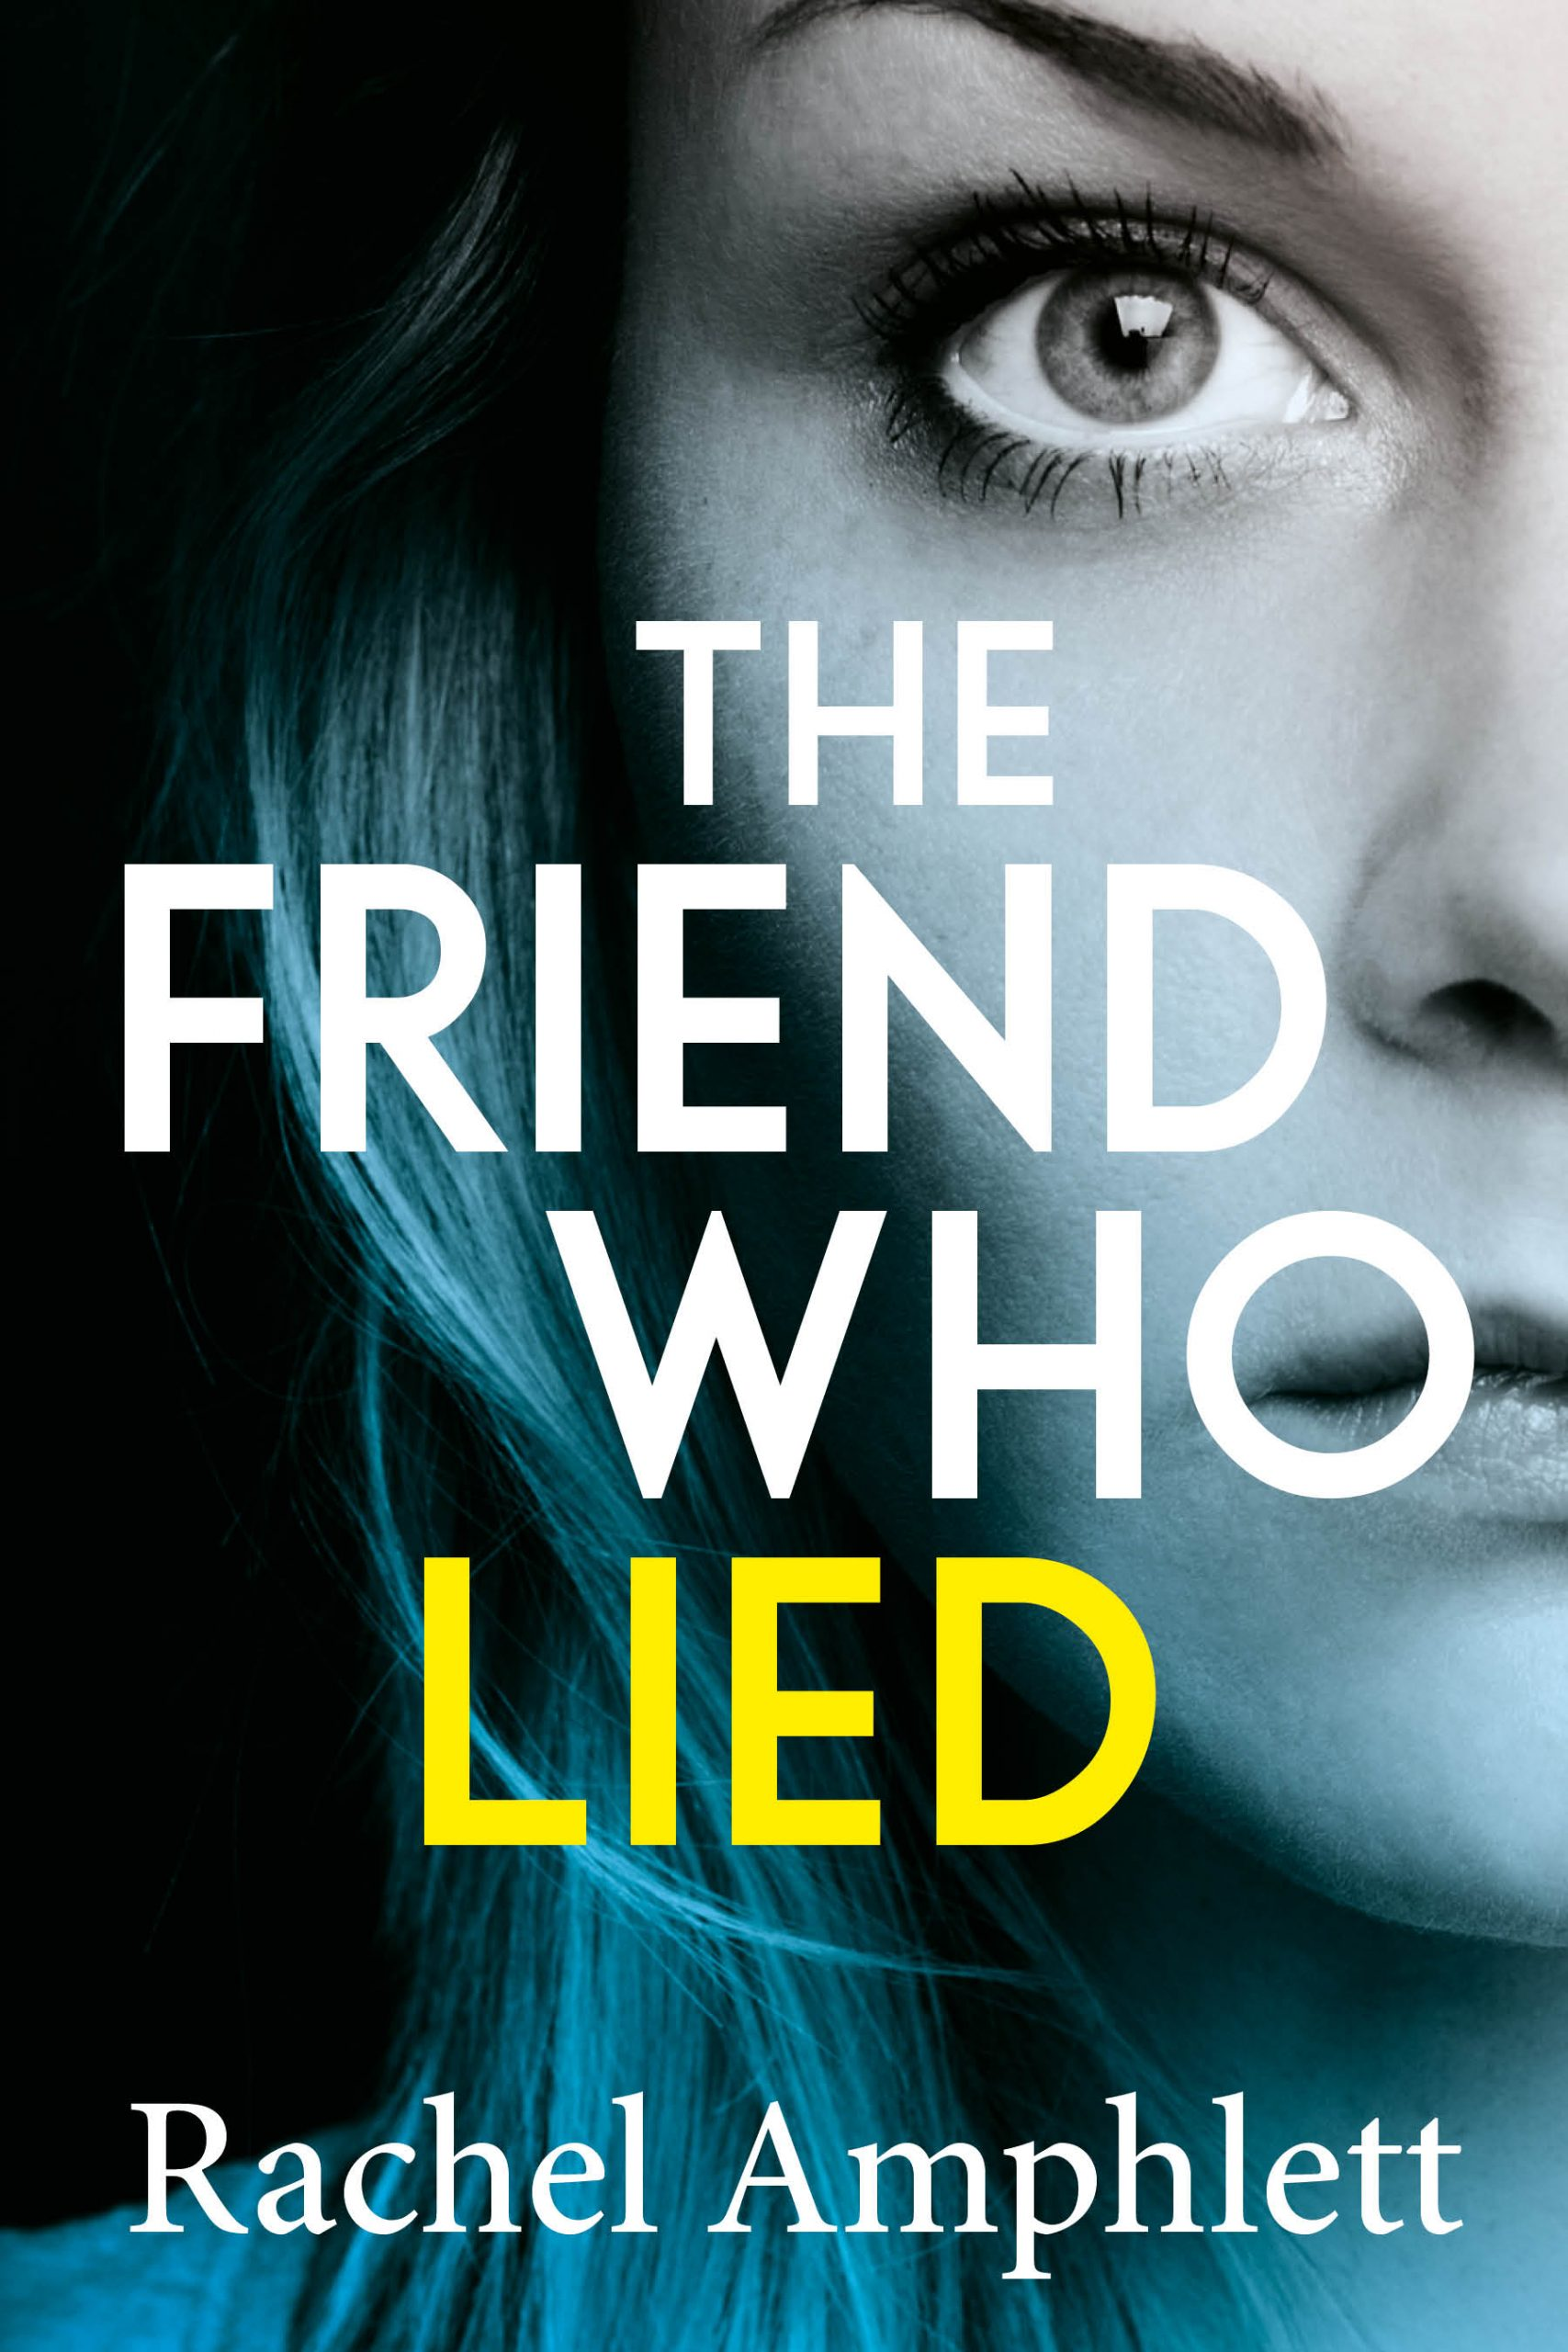 Cover image for The Friend Who Lied